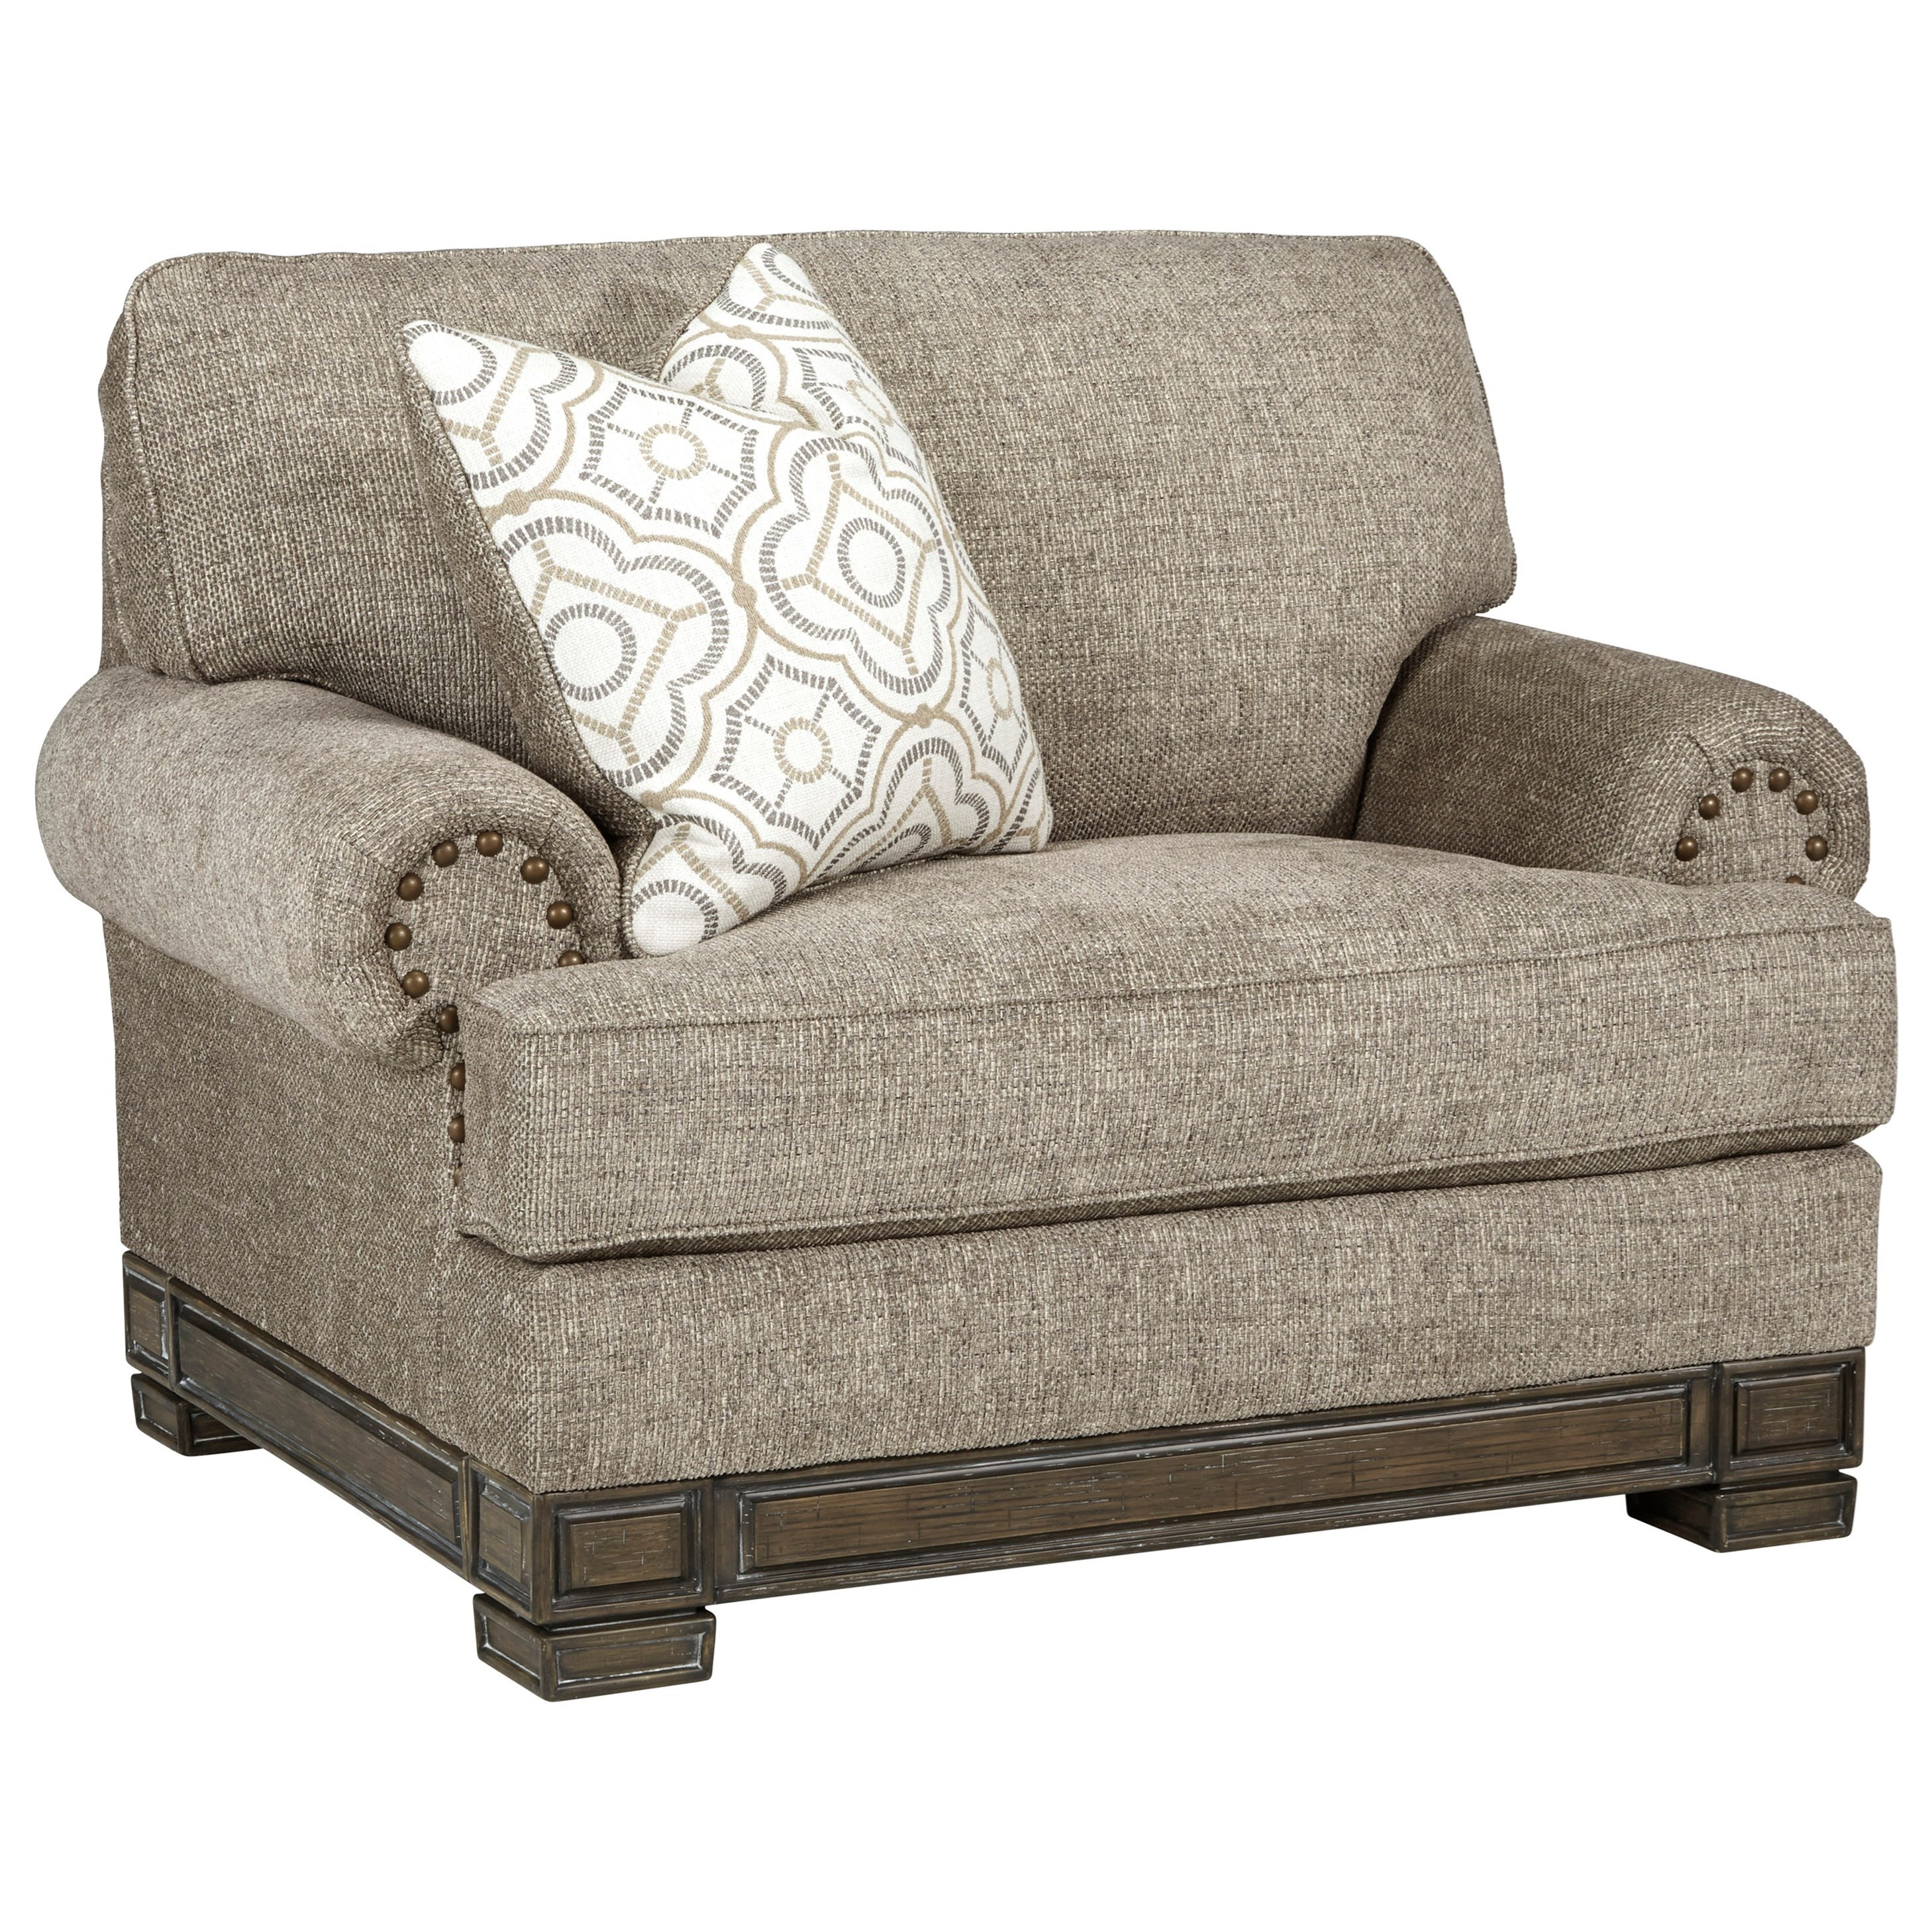 Einsgrove Chair and a Half by Signature Design by Ashley at Northeast Factory Direct